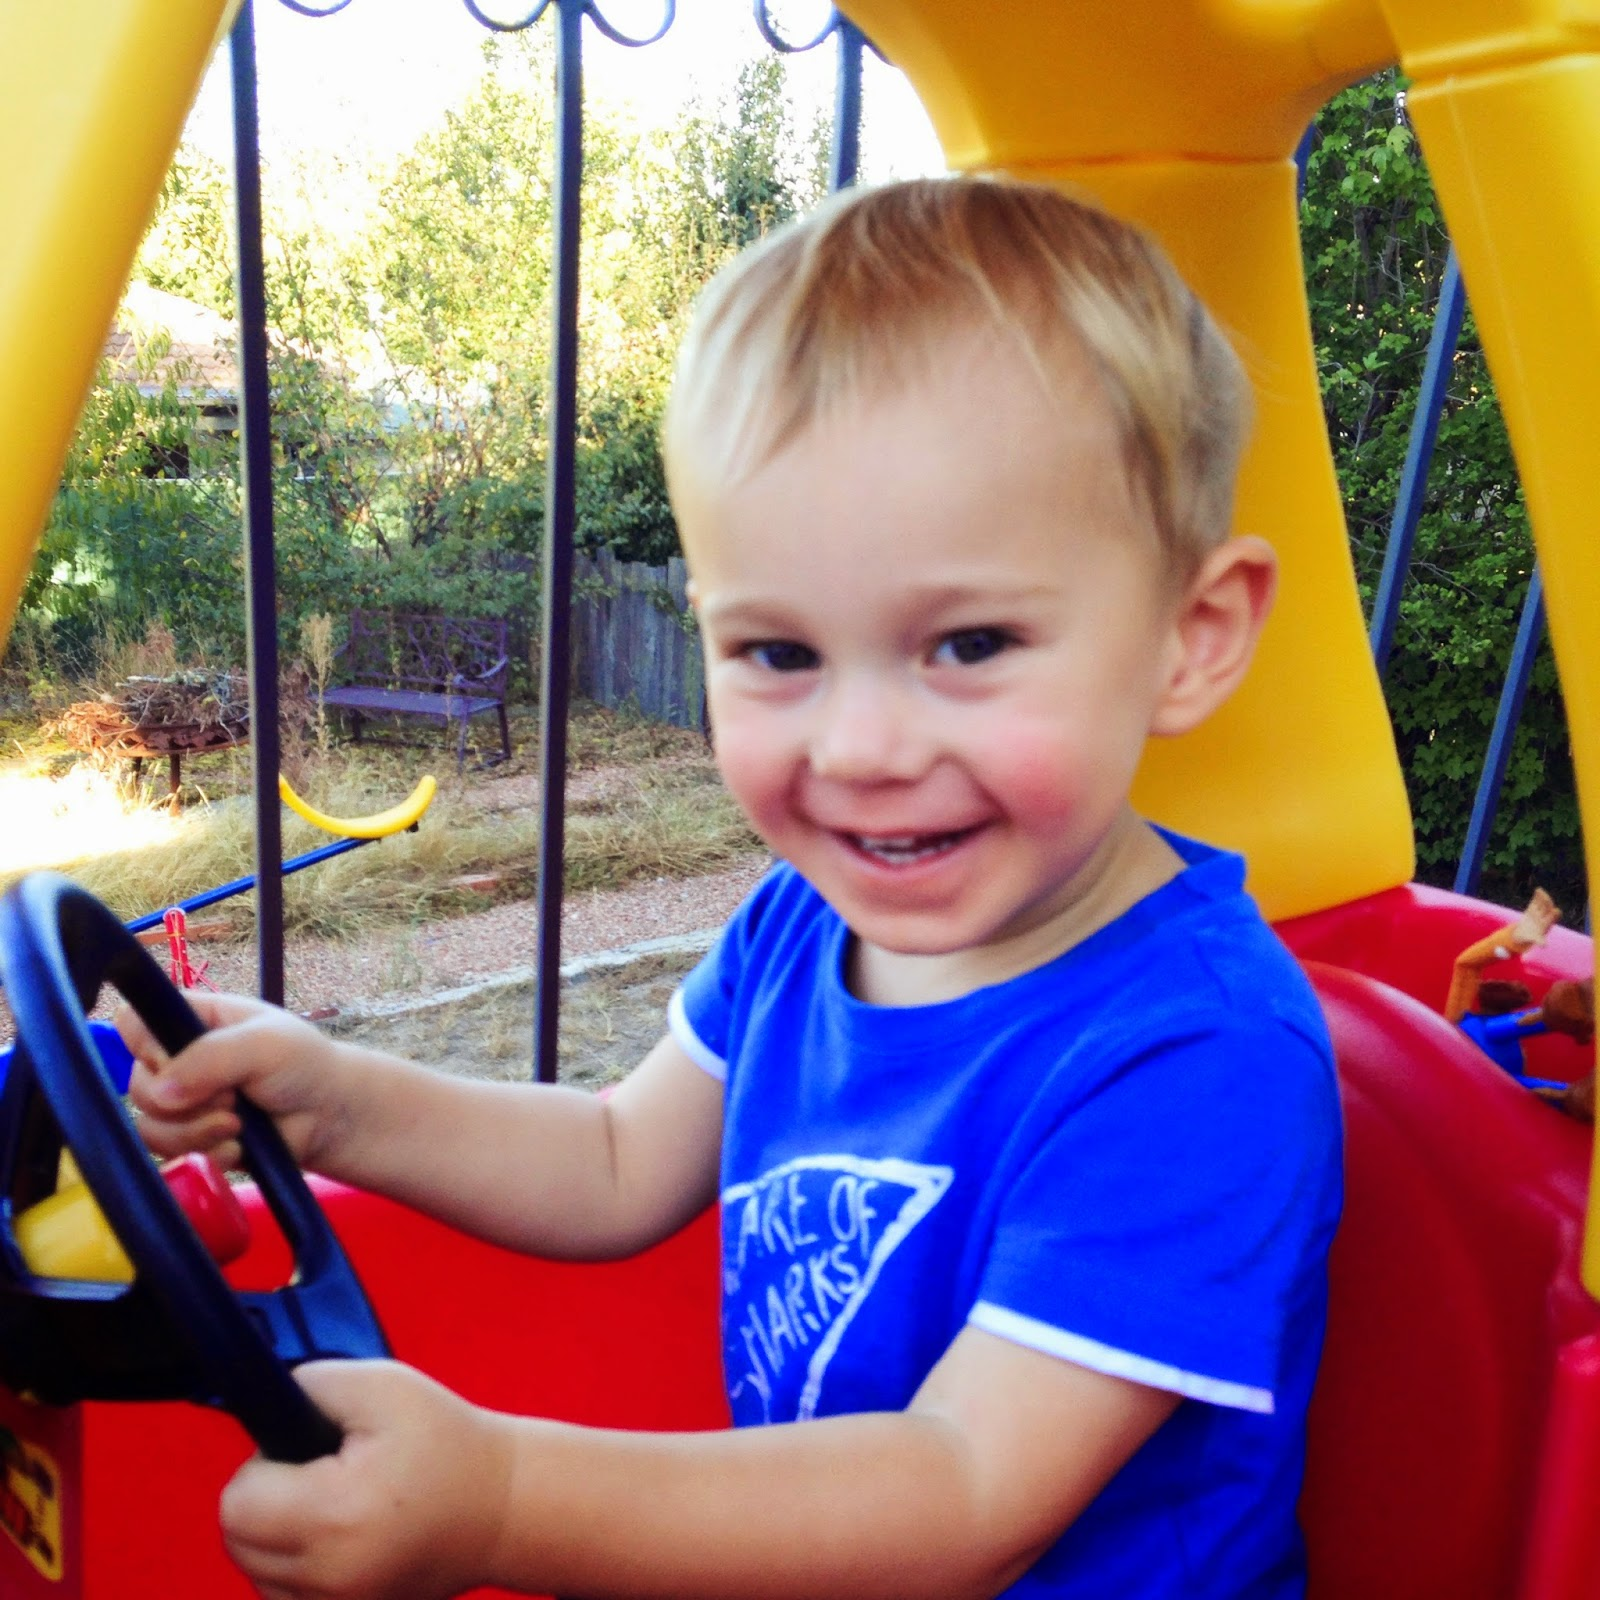 Max driving the car